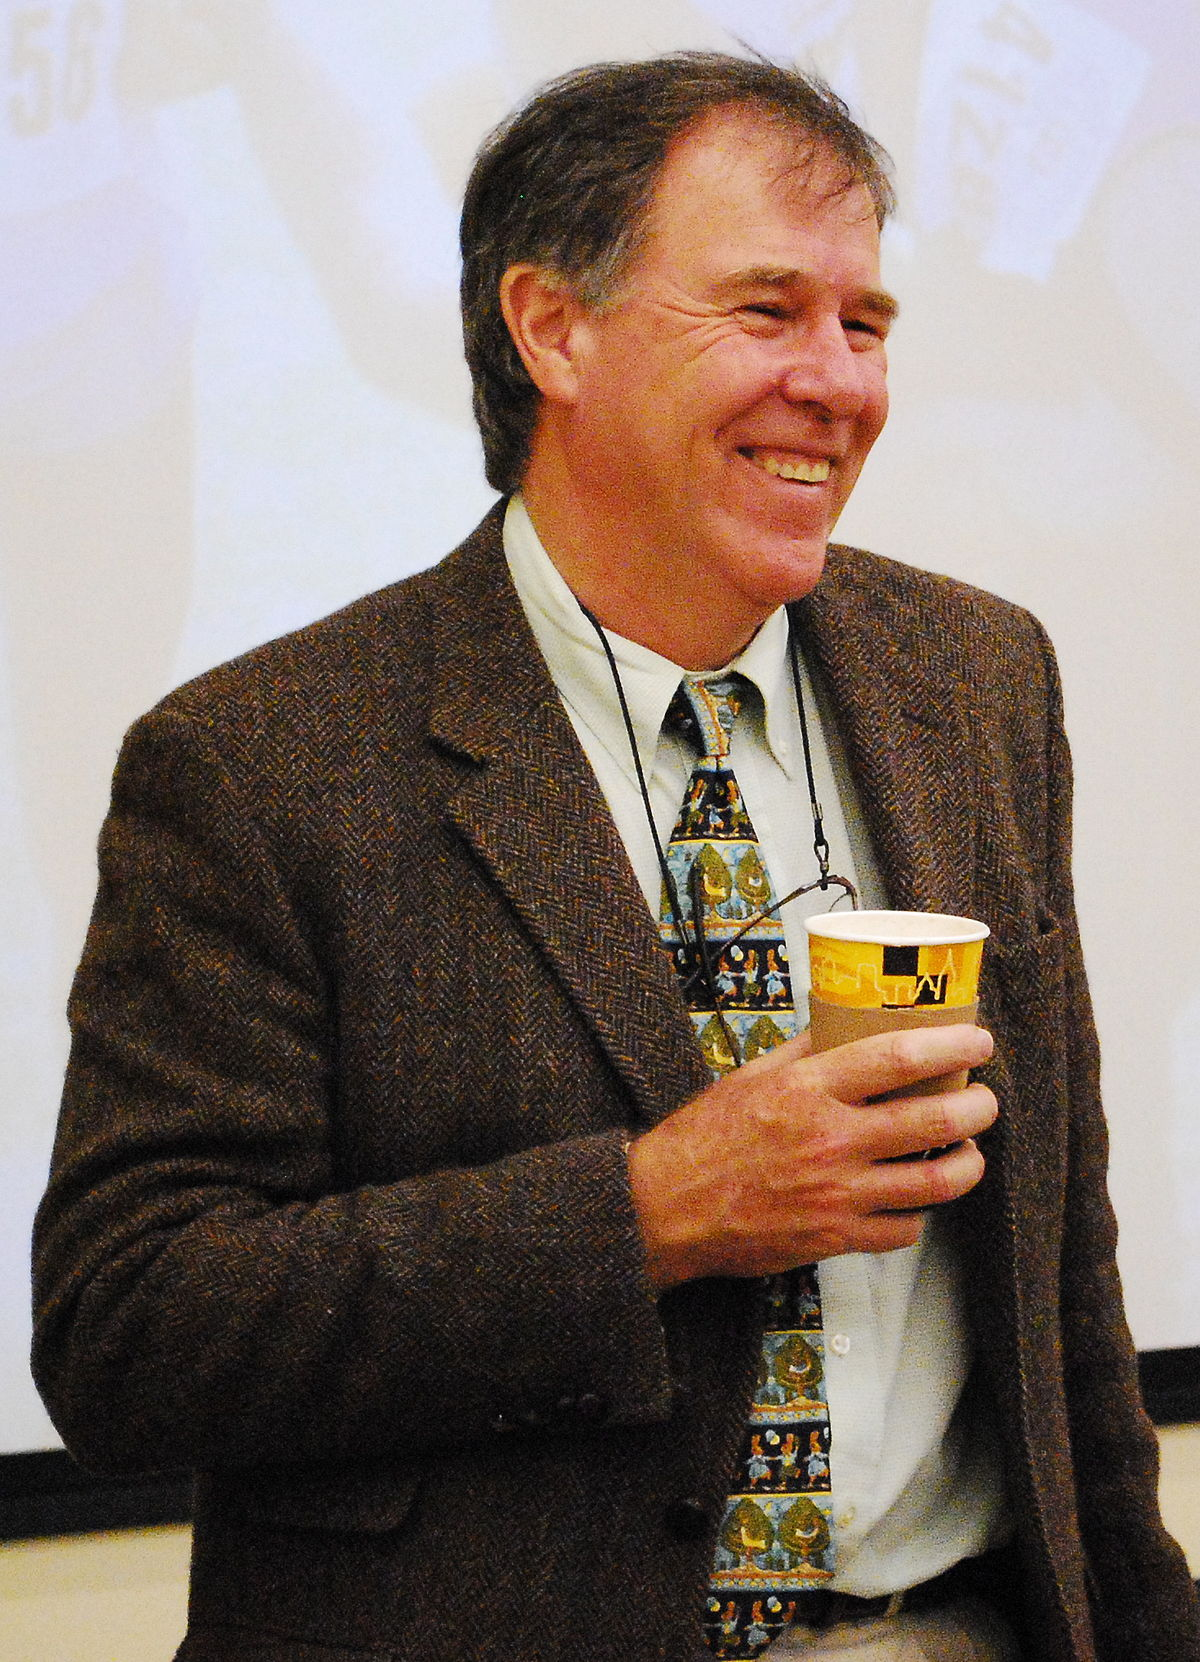 1200px Dr. Tim Noakes at West Point 13 Nov 09